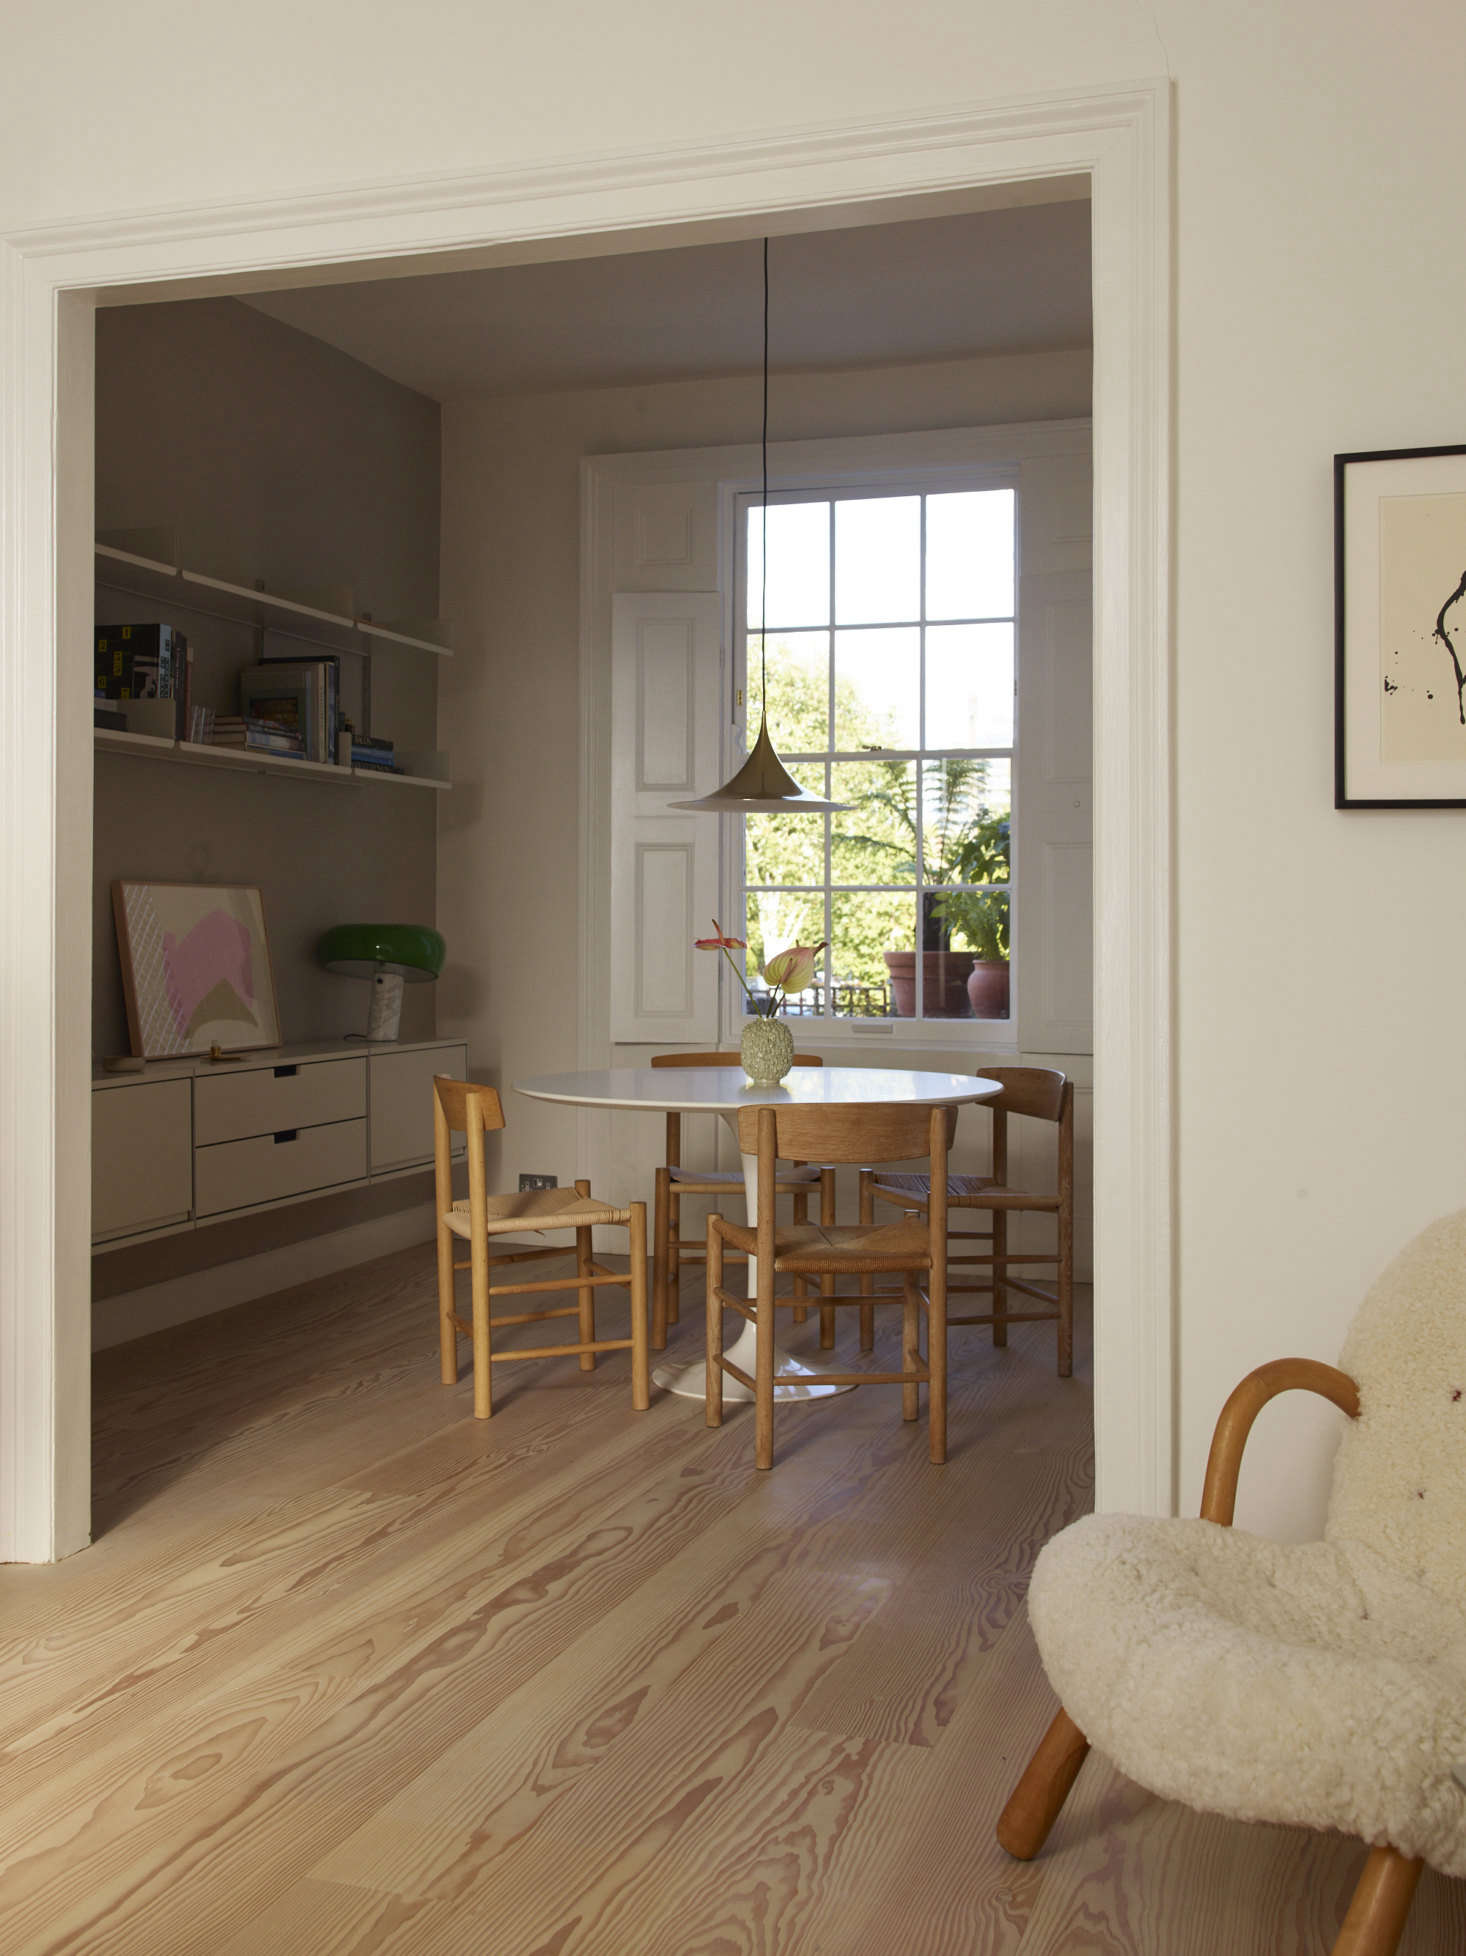 The dining room, with a Vitsoe wall-mounted shelving unit and a vintage Gubi pendant from Denmark.